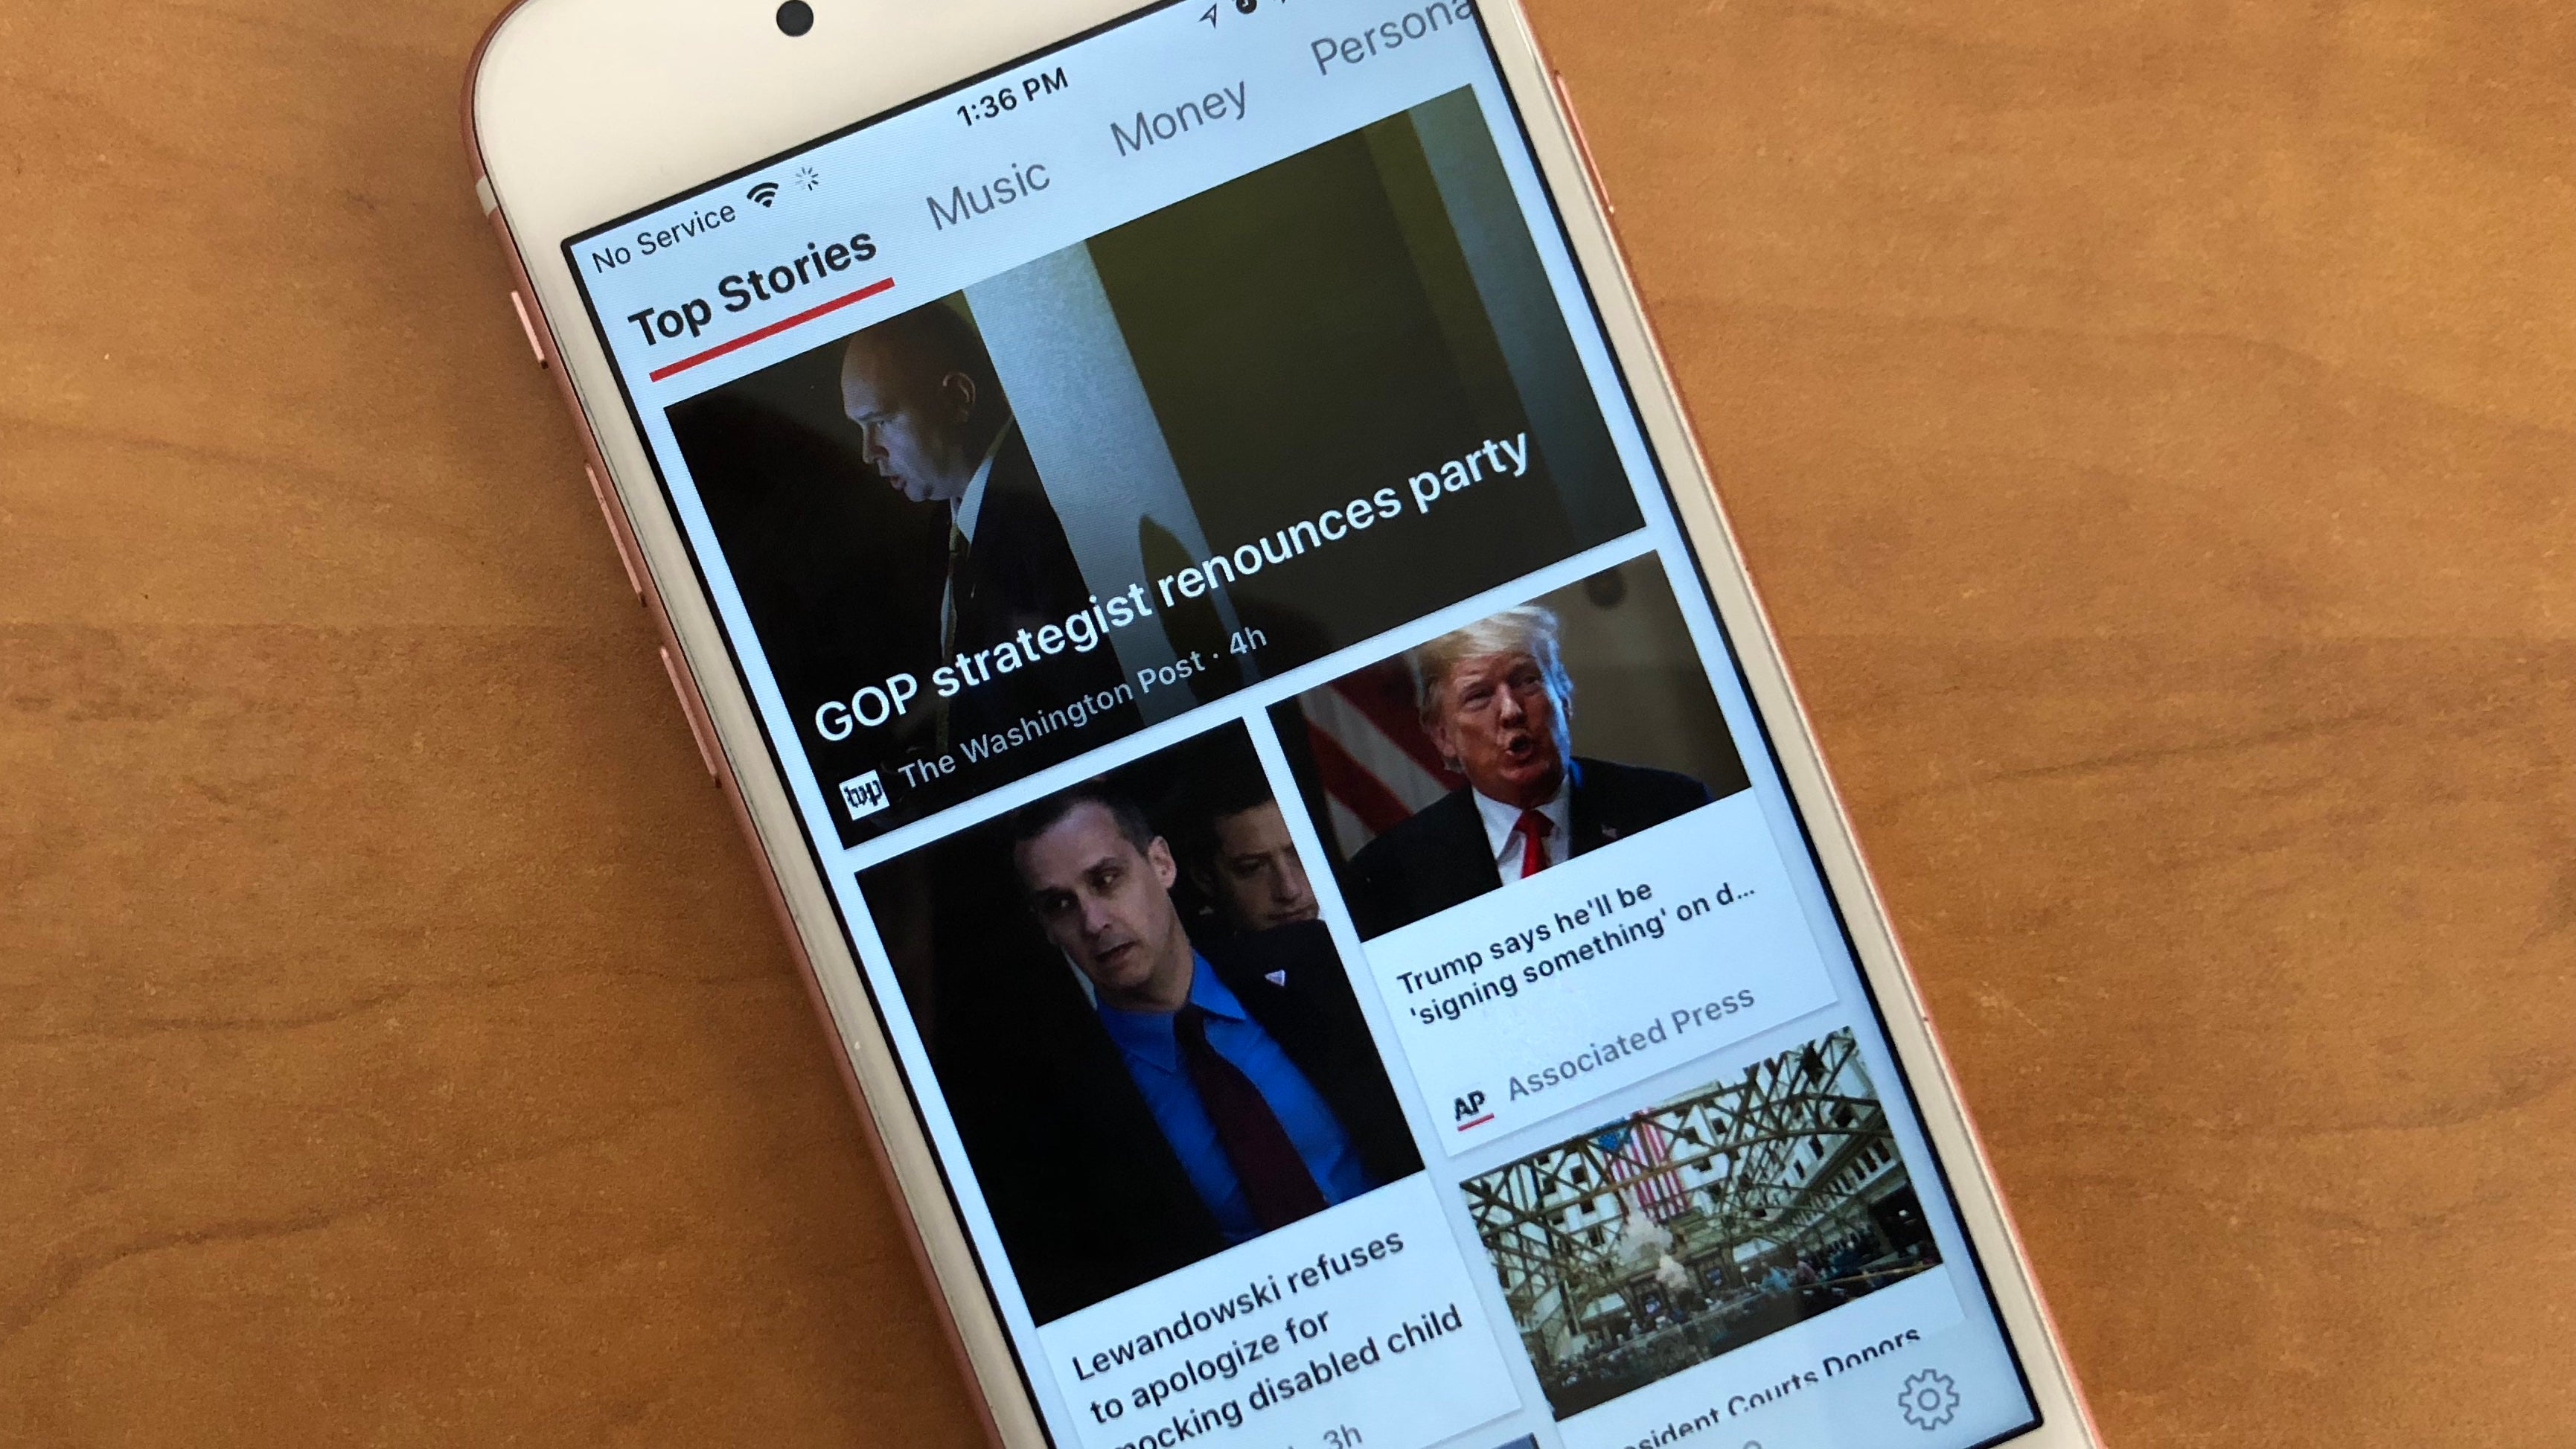 Getting Started With The New Microsoft News App